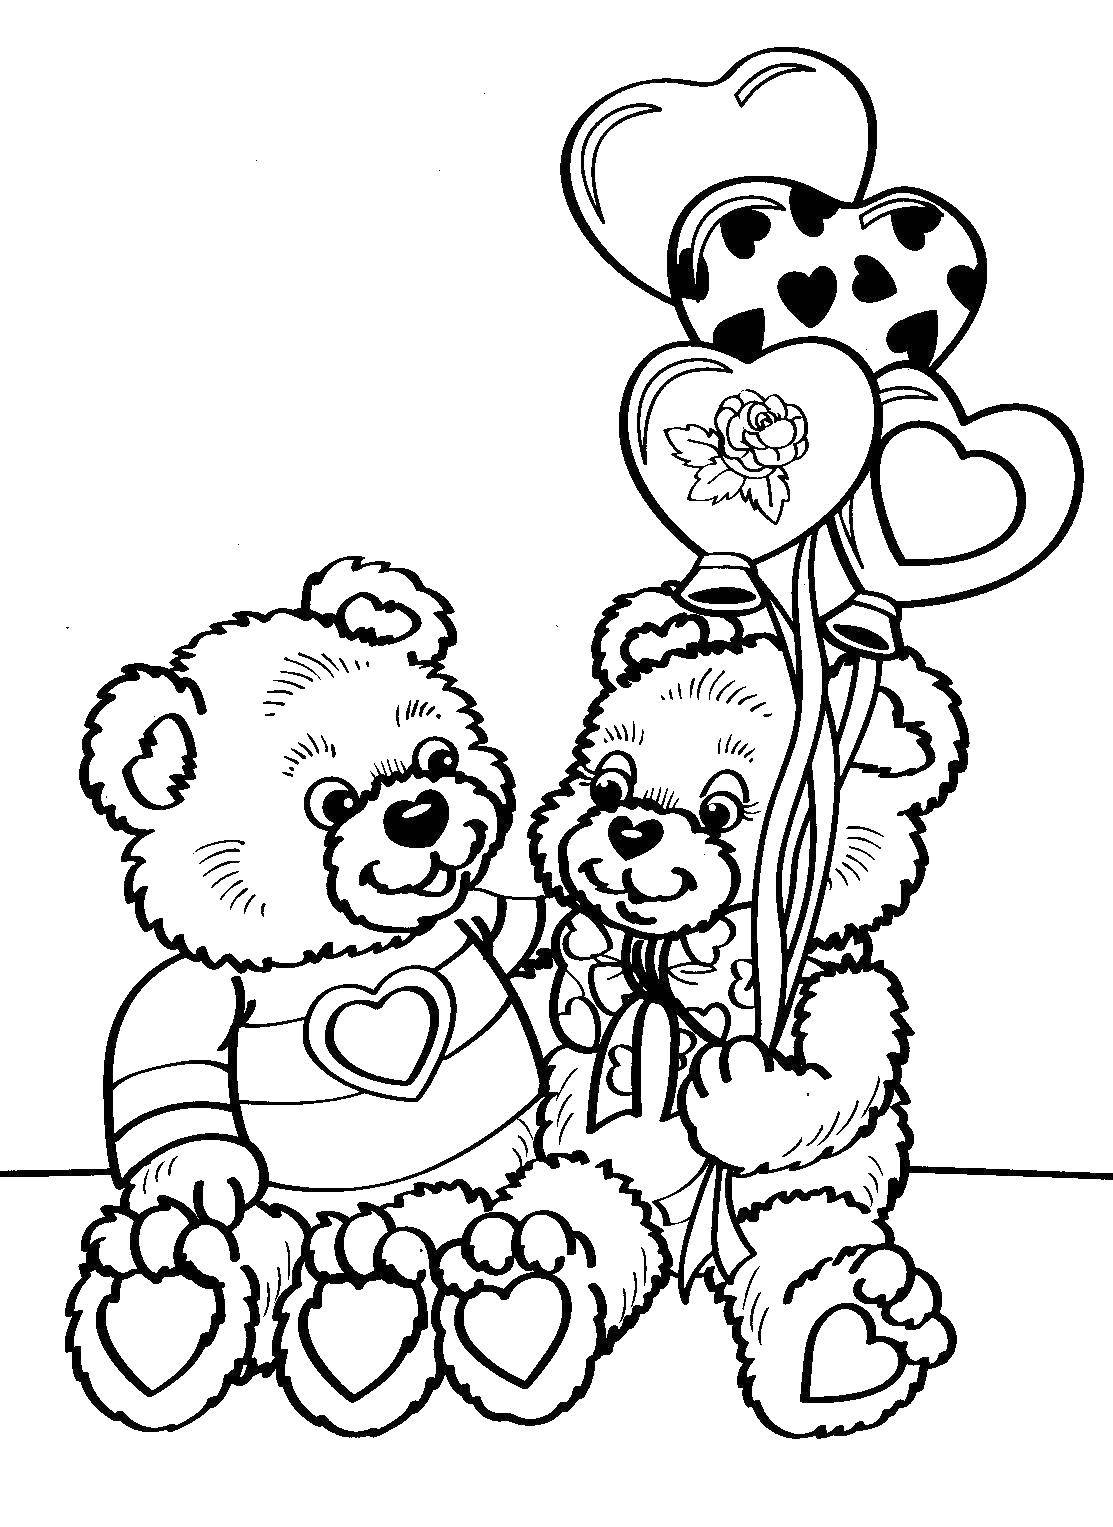 Free Teddy Bear Coloring Pages Teddy Bears Coloring Pages Teddy ... | 1527x1113